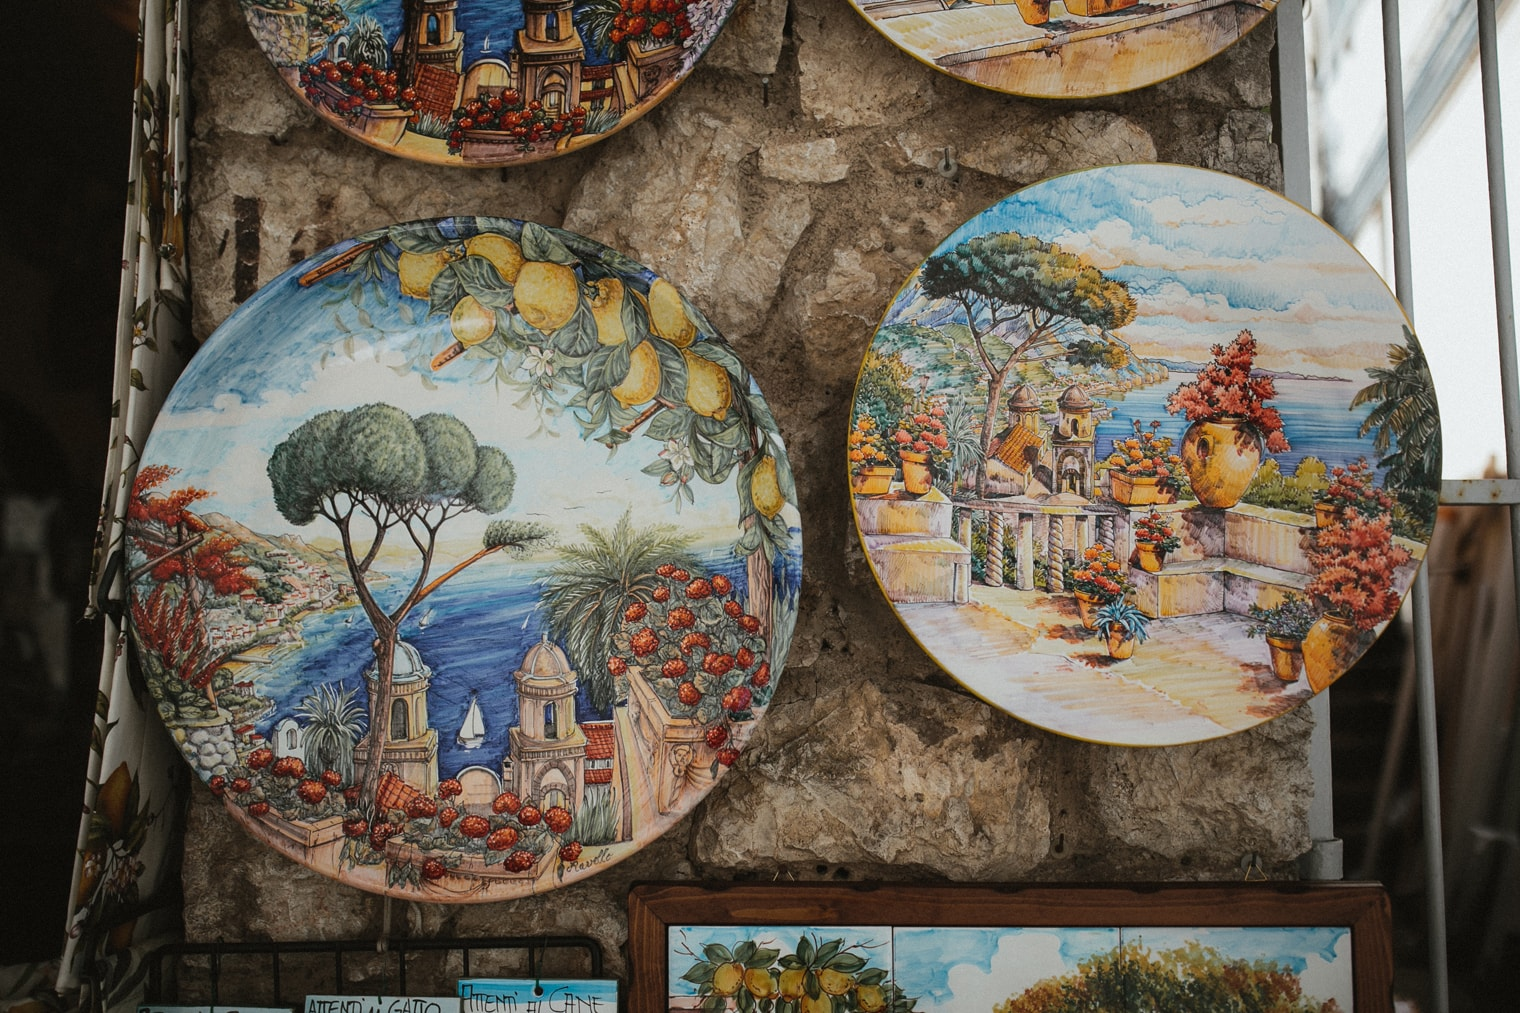 Artwork in the streets of Ravello